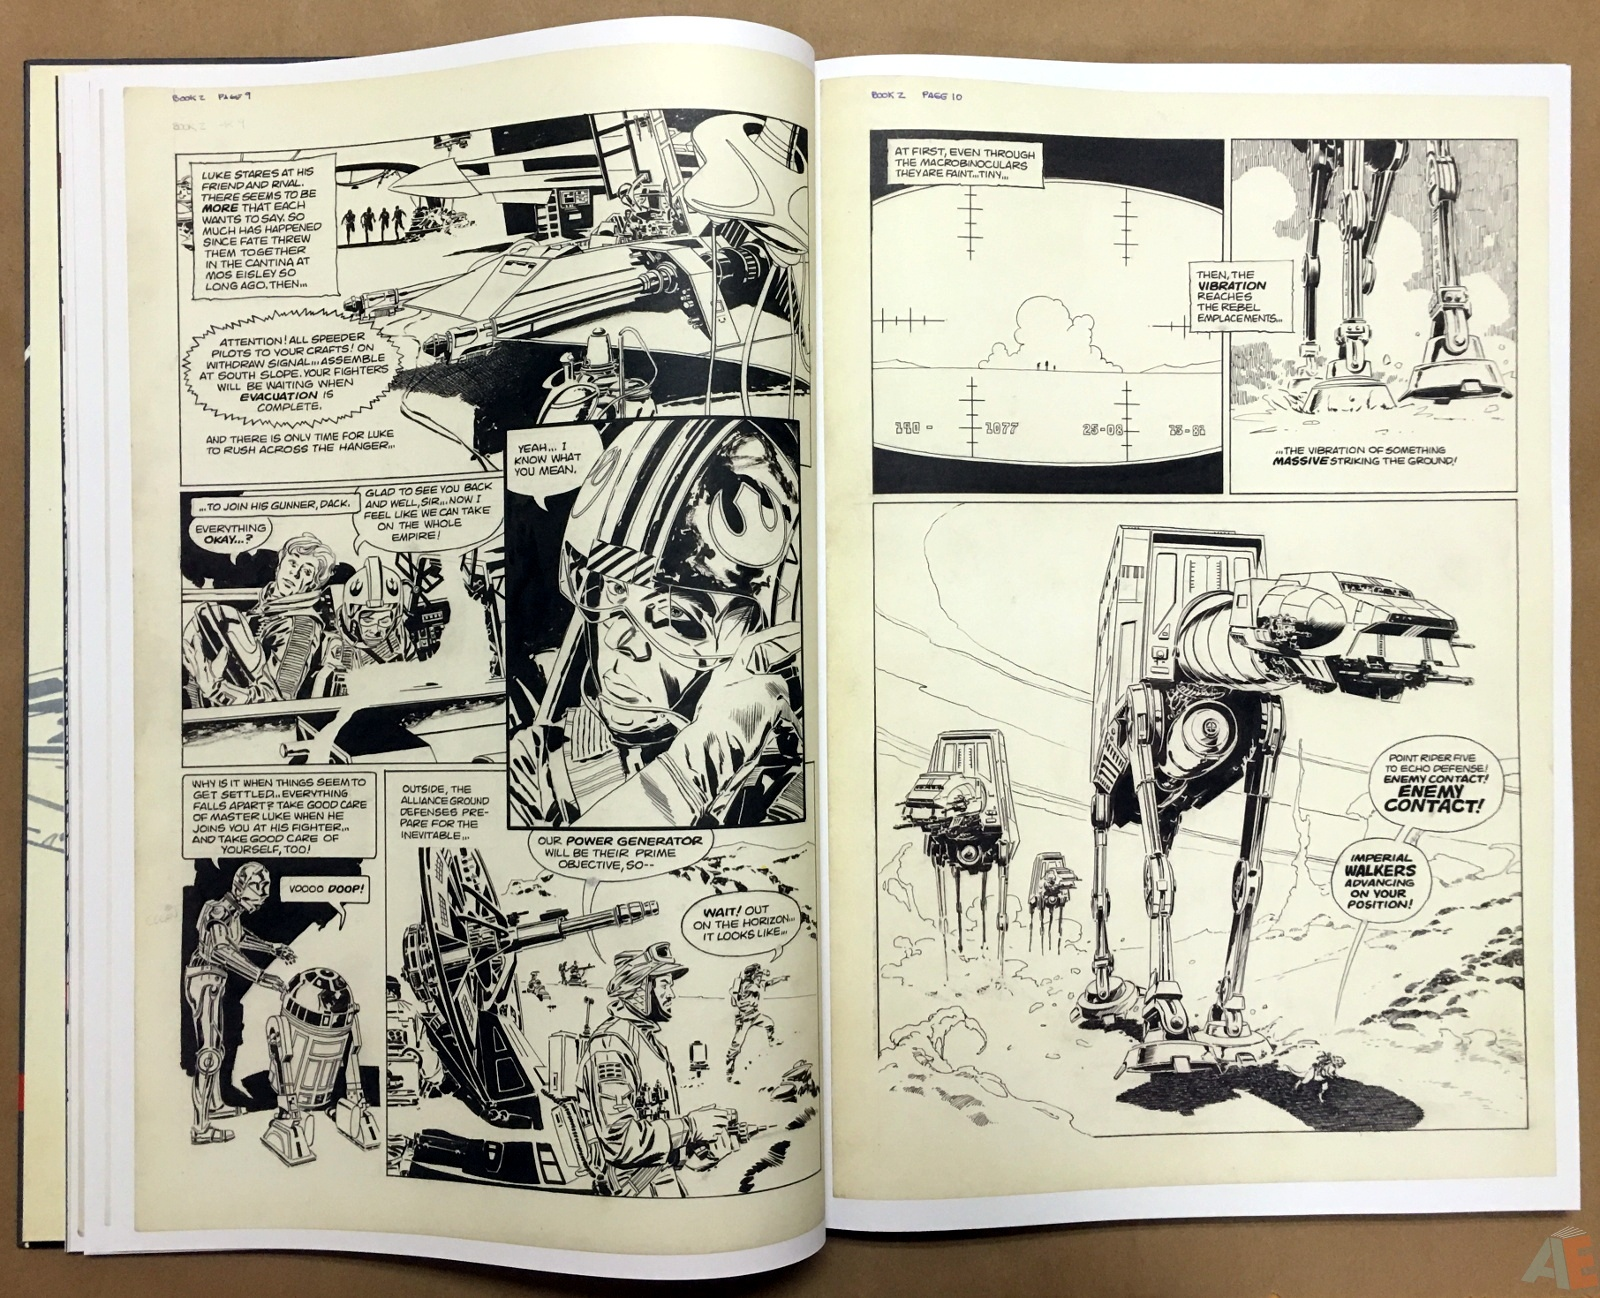 Al Williamson's Star Wars: The Empire Strikes Back Artist's Edition 14